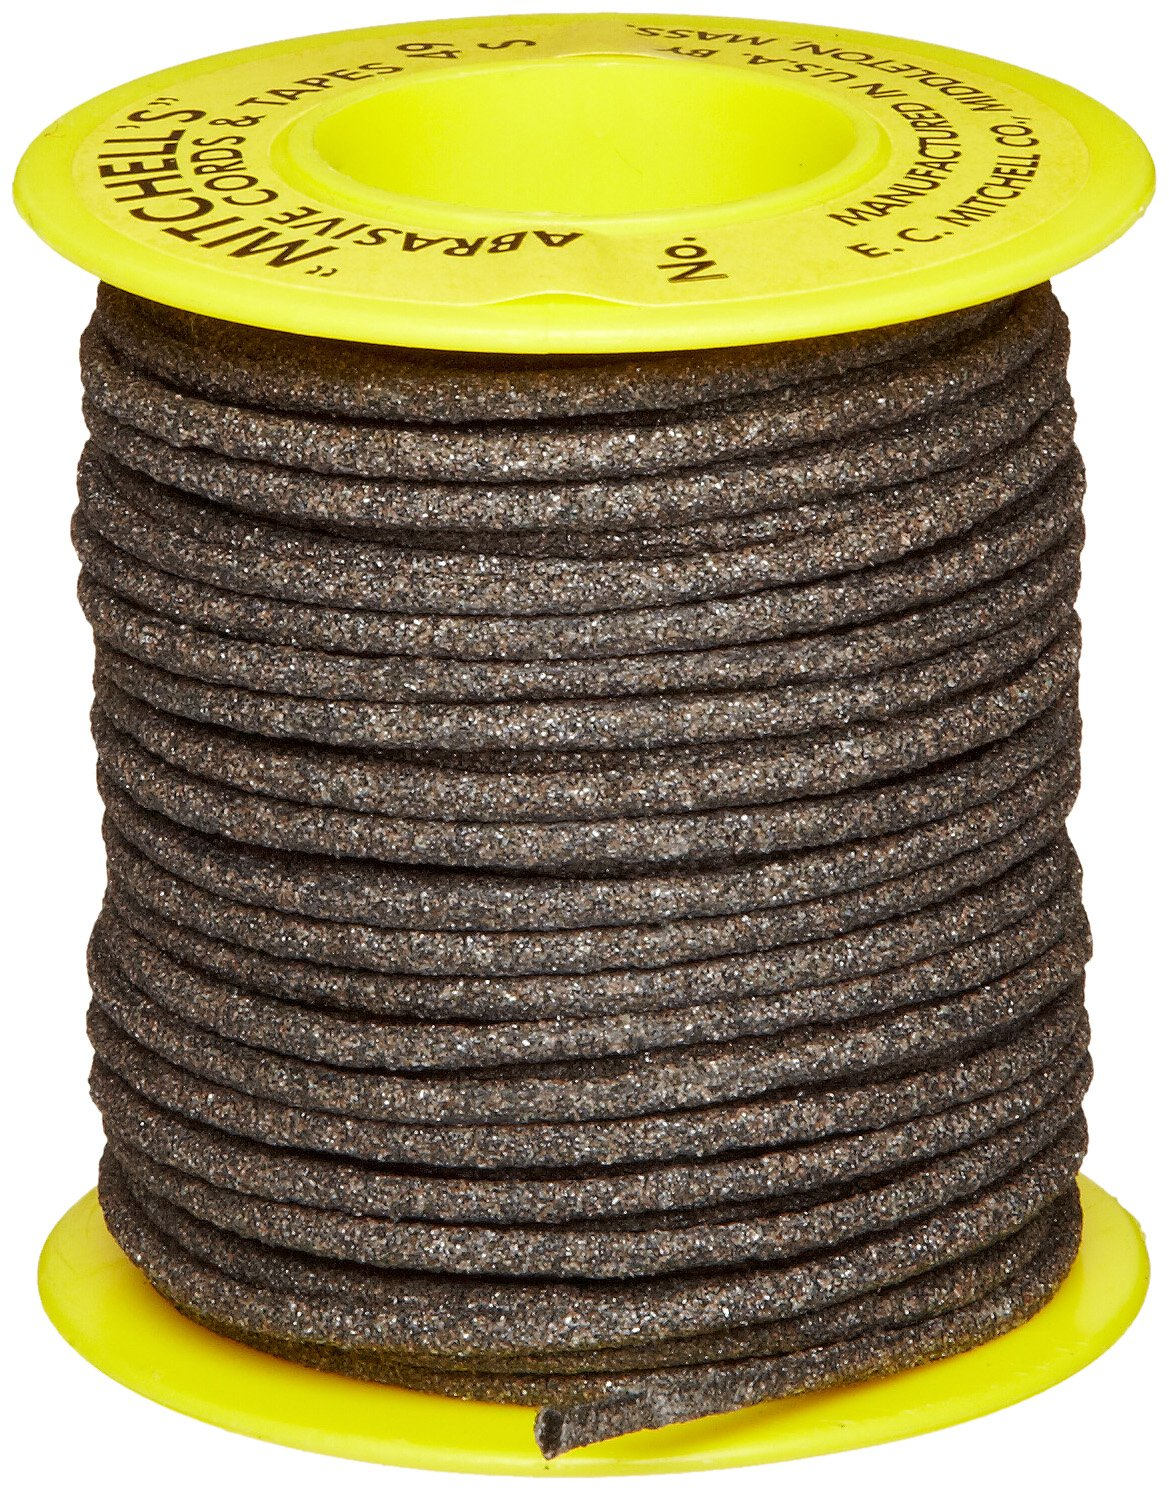 Mitchell Abrasives 49-S Round Abrasive Cord, Silicon Carbide 120 Grit .082'' Diameter x 50 Feet by Mitchell Abrasives